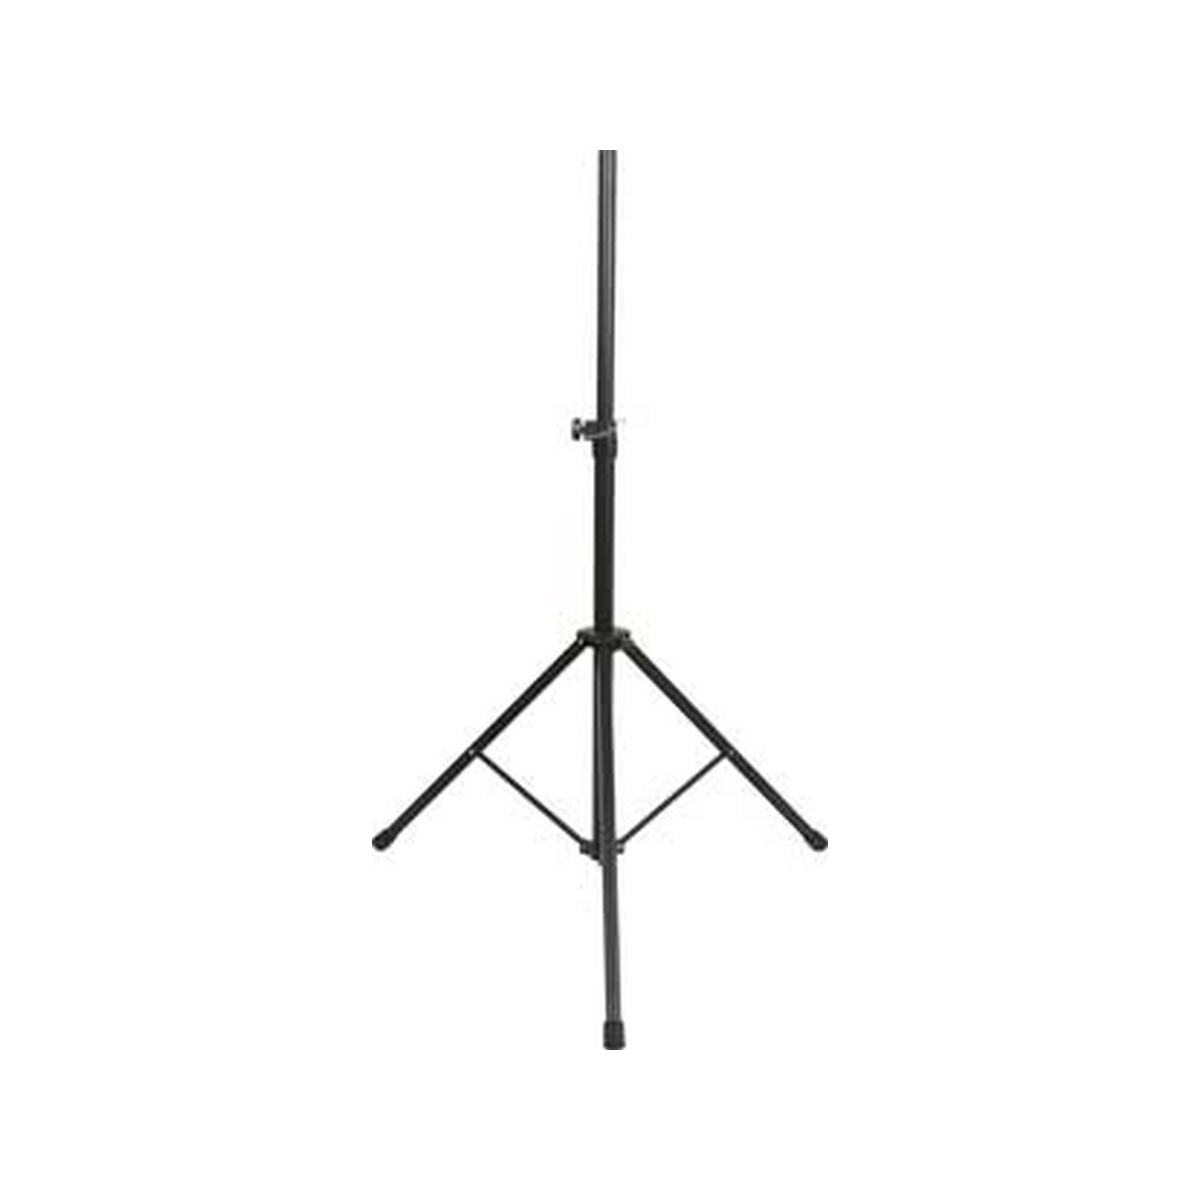 Galaxy Audio DELUXE TRIPOD SPEAKER STAND: Deluxe speaker stand,